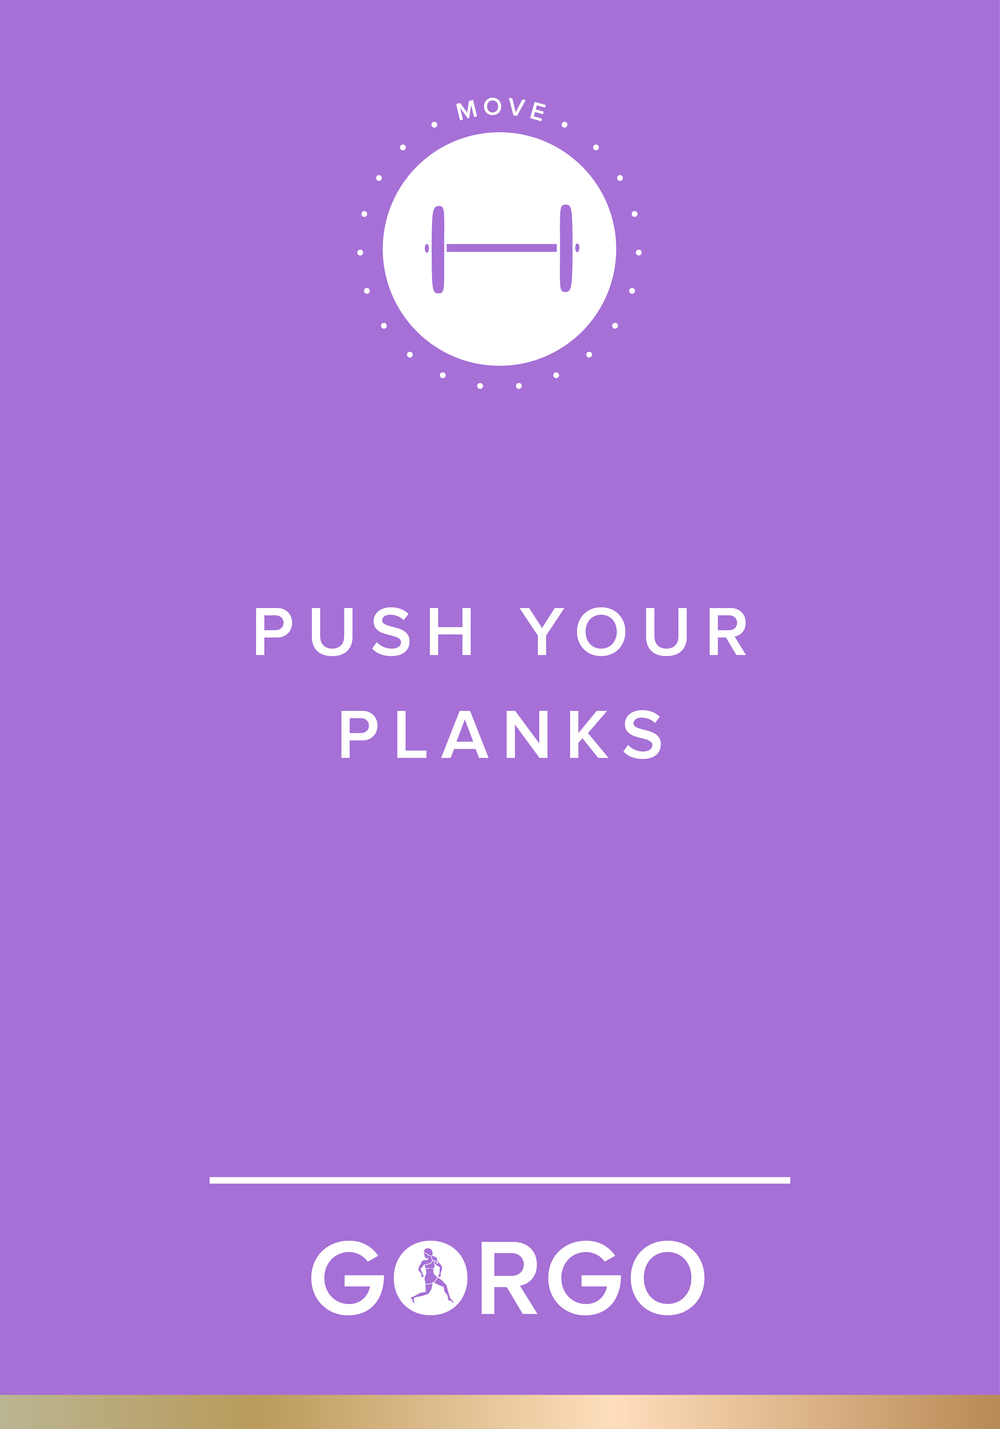 Push Your Planks #gorgogirl #move